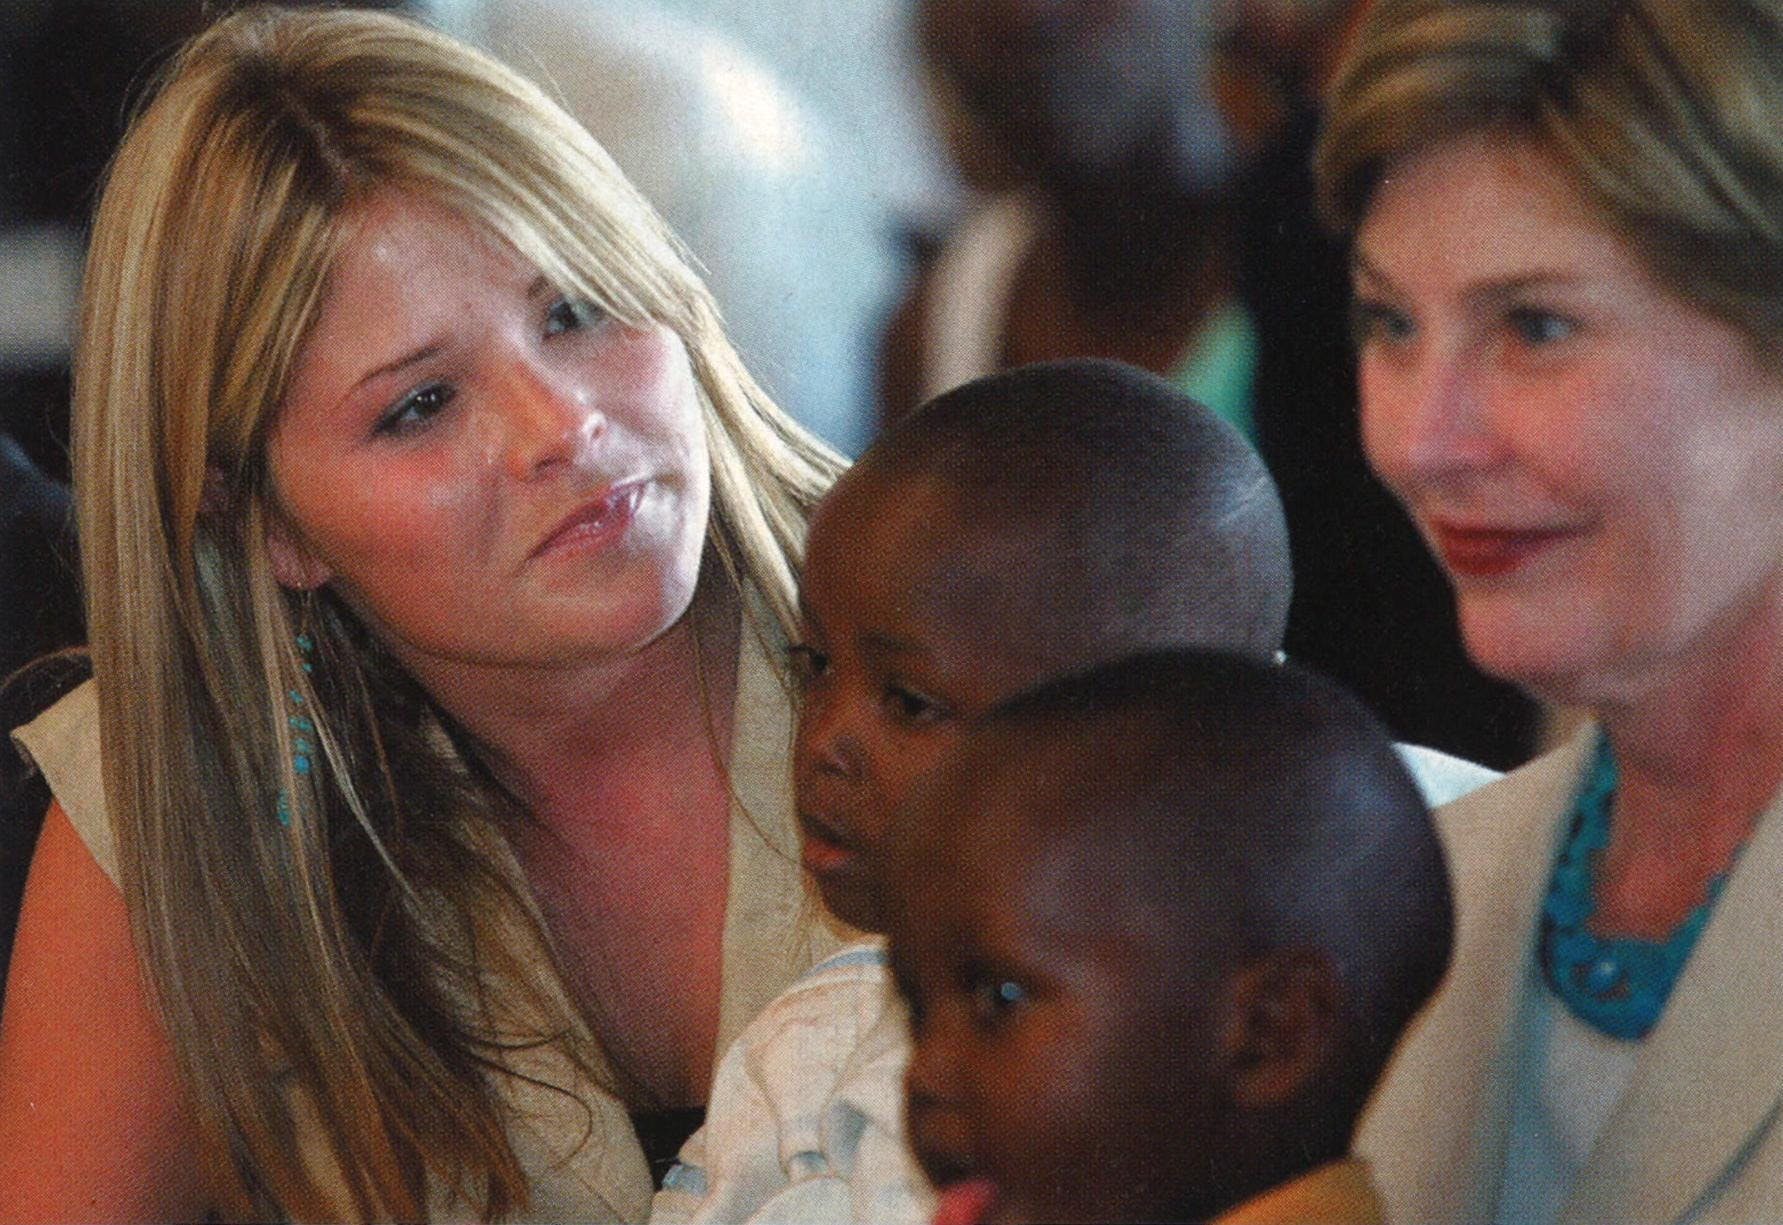 Jenna with two children and her mother at the Evangelical Friends Church of Kagarama in Kigali, Rwanda, in 2005.